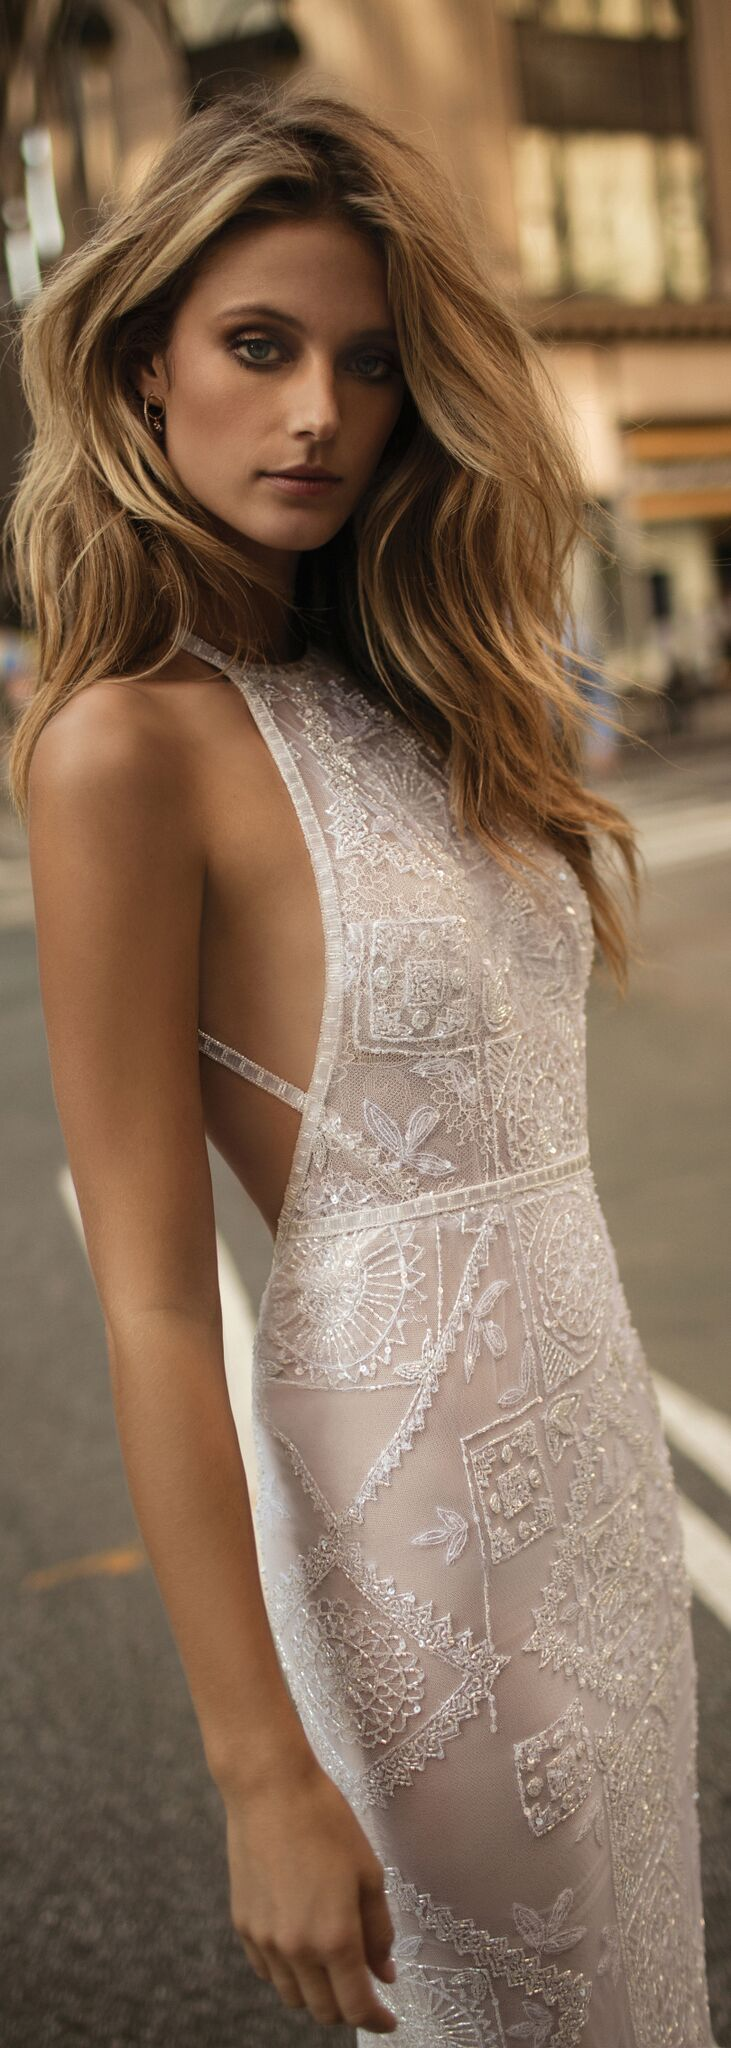 The beaded pattern on this Berta dress is so unusual! @bertabridal